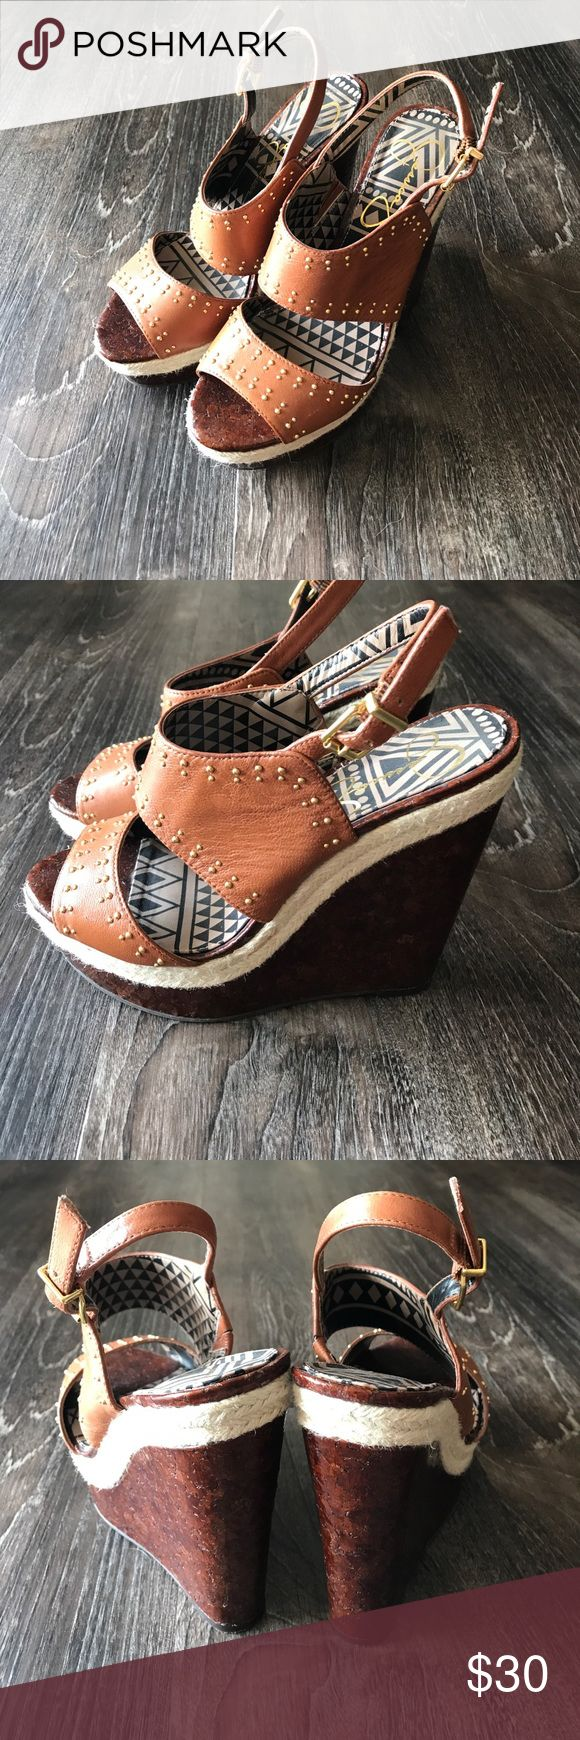 Jessica Simpson wedges Jessica Simpson brown wedges size 8. Only worn to 2 occasions. Jessica Simpson Shoes Wedges